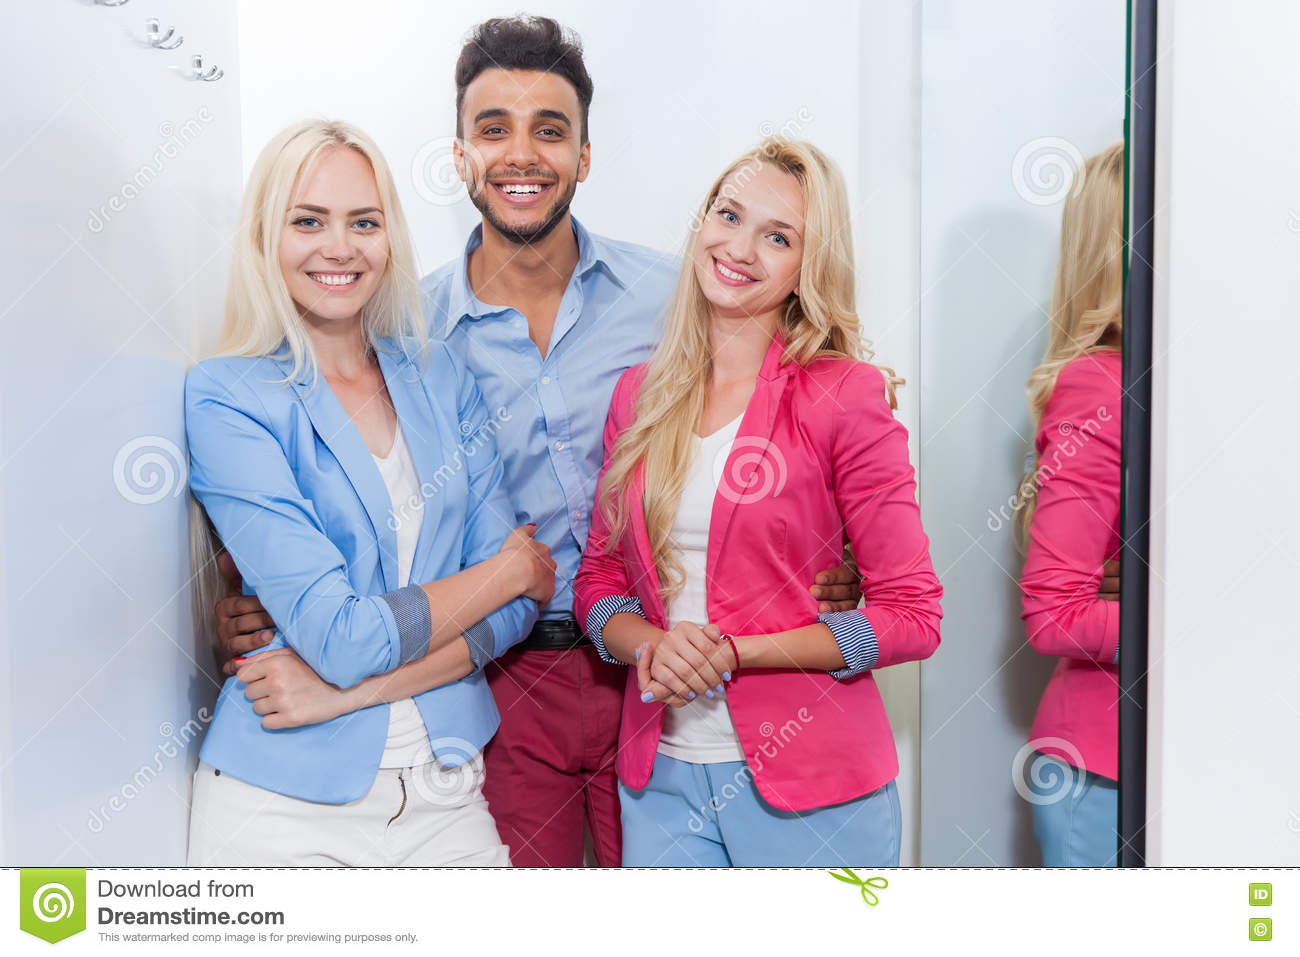 Young People Fashion Shop Fitting Room Shopping Happy Smiling Woman And Man Trying New Clothes